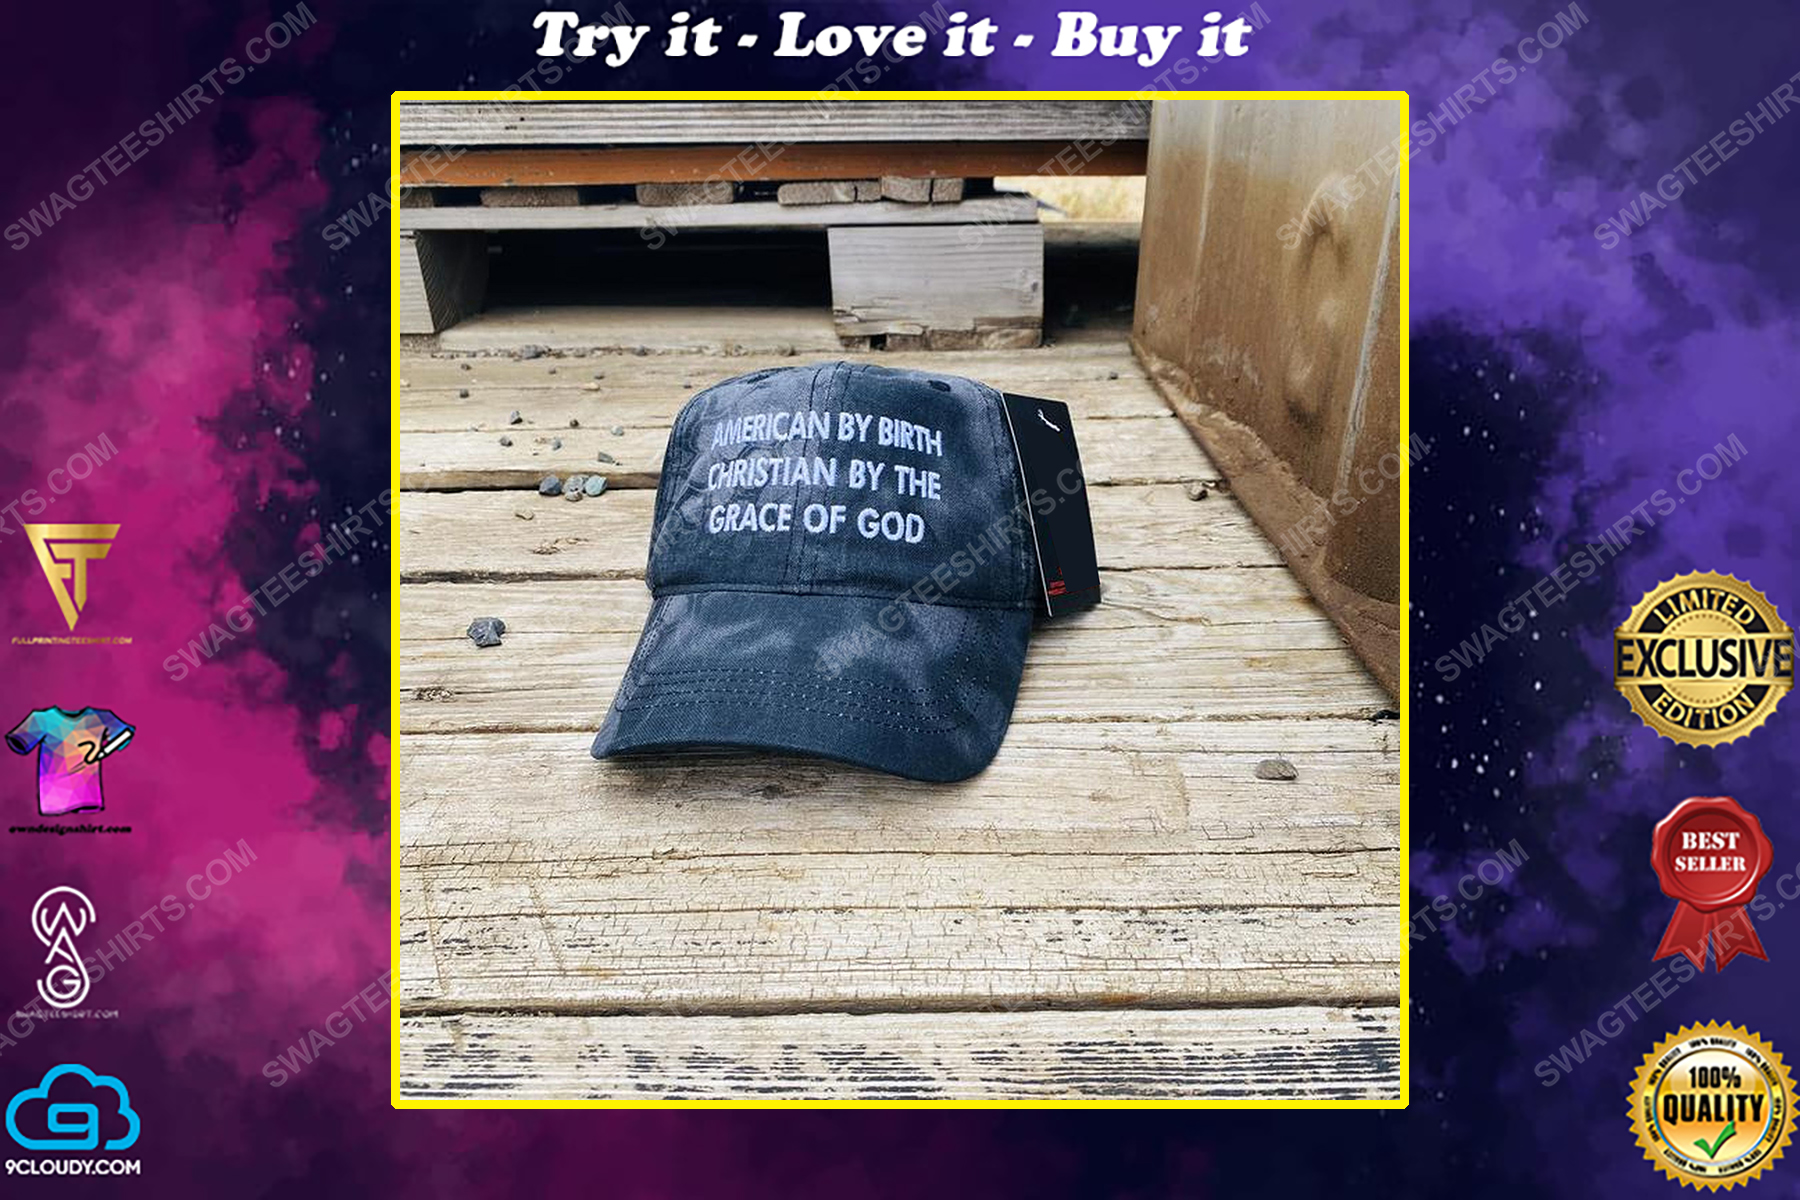 American by birth Christian by the grace of God full print classic hat